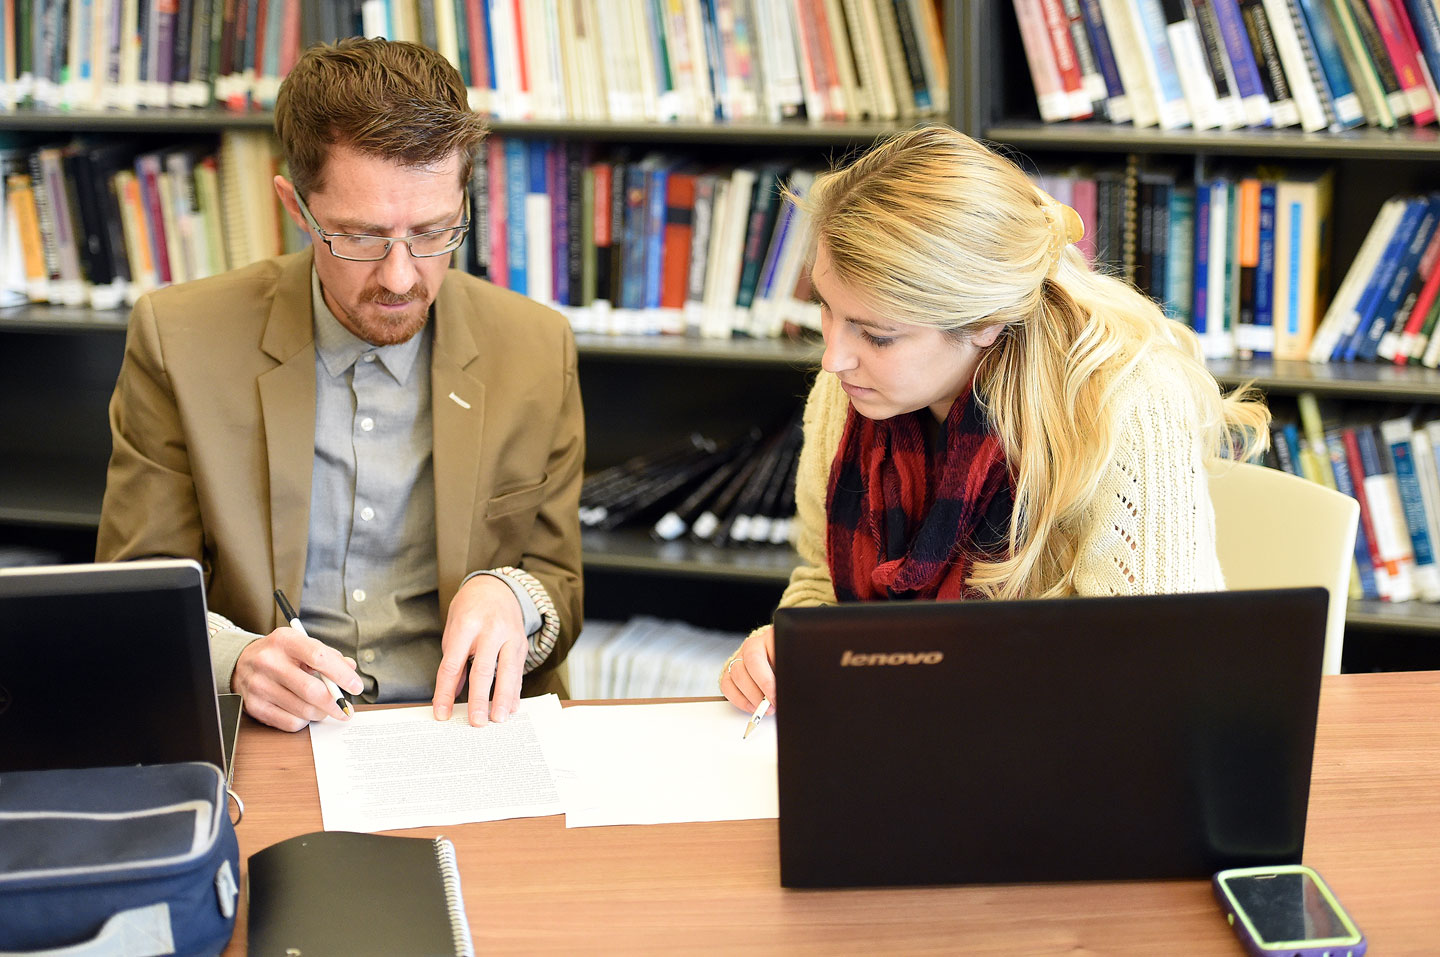 Writing Center tutor advises a student